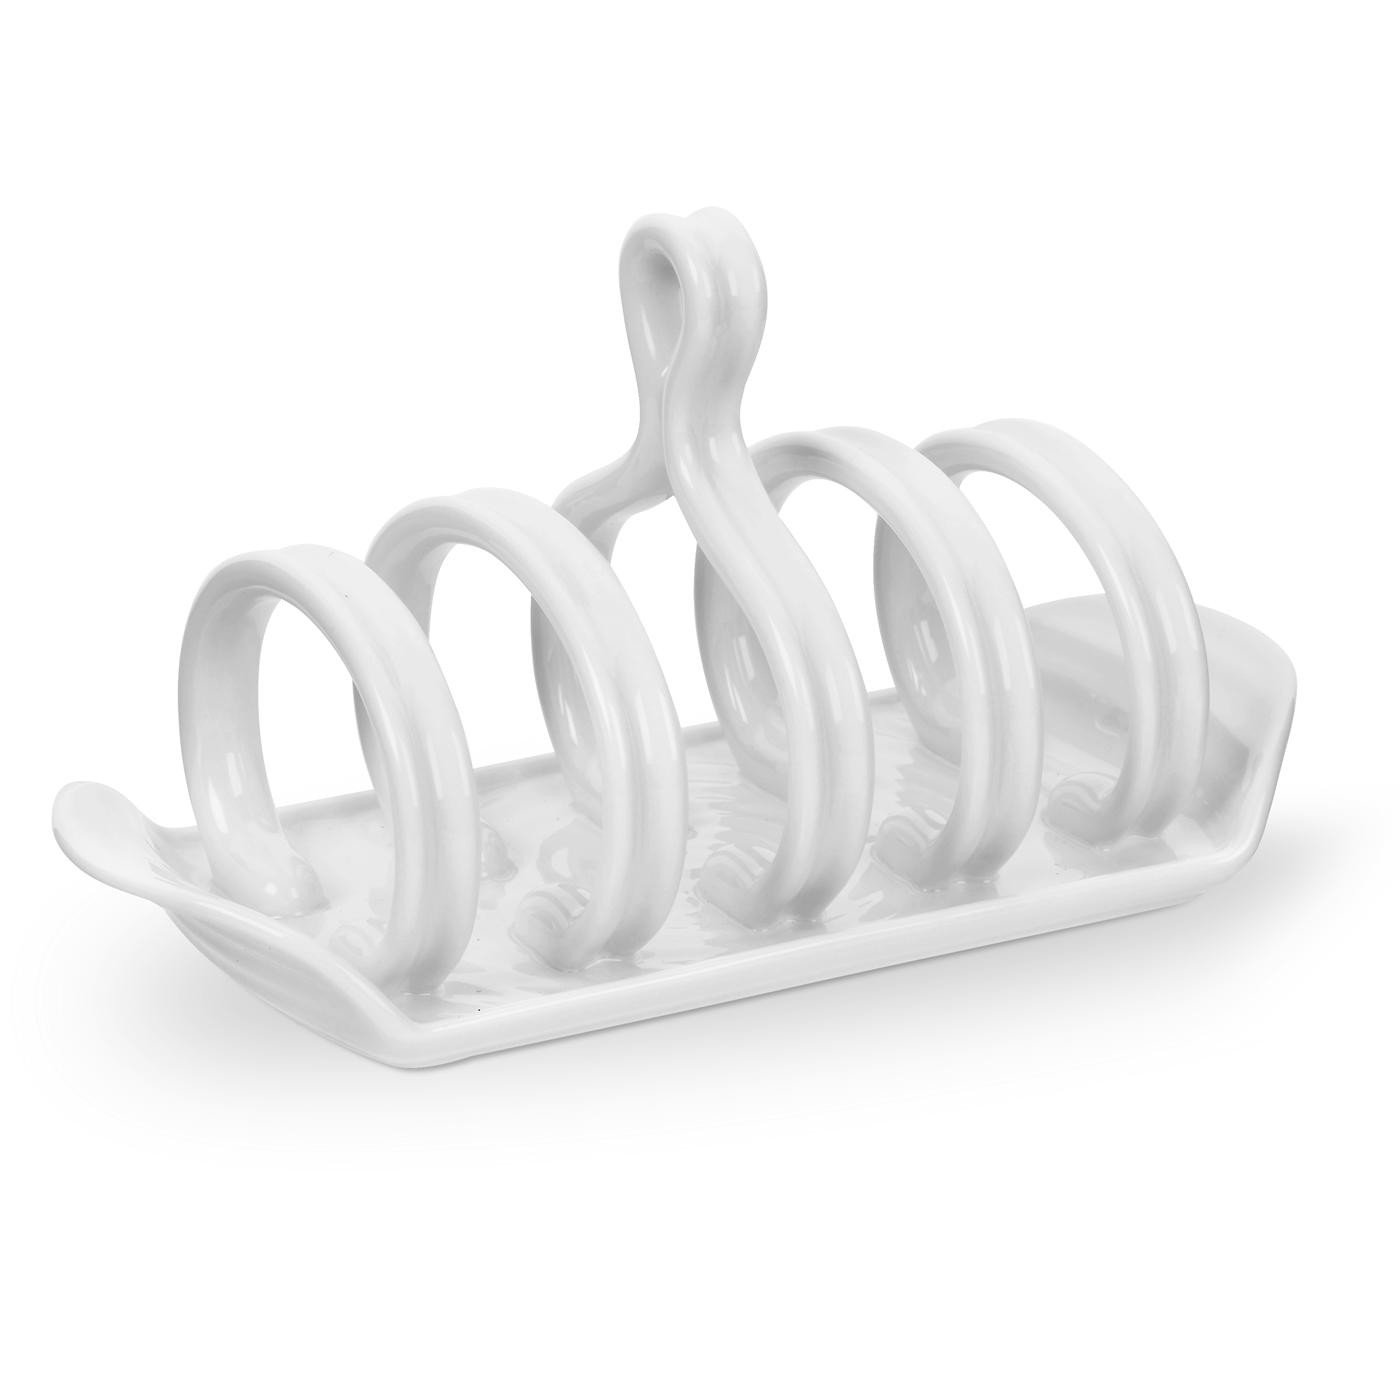 Sophie Conran For Portmeirion White Toast Rack